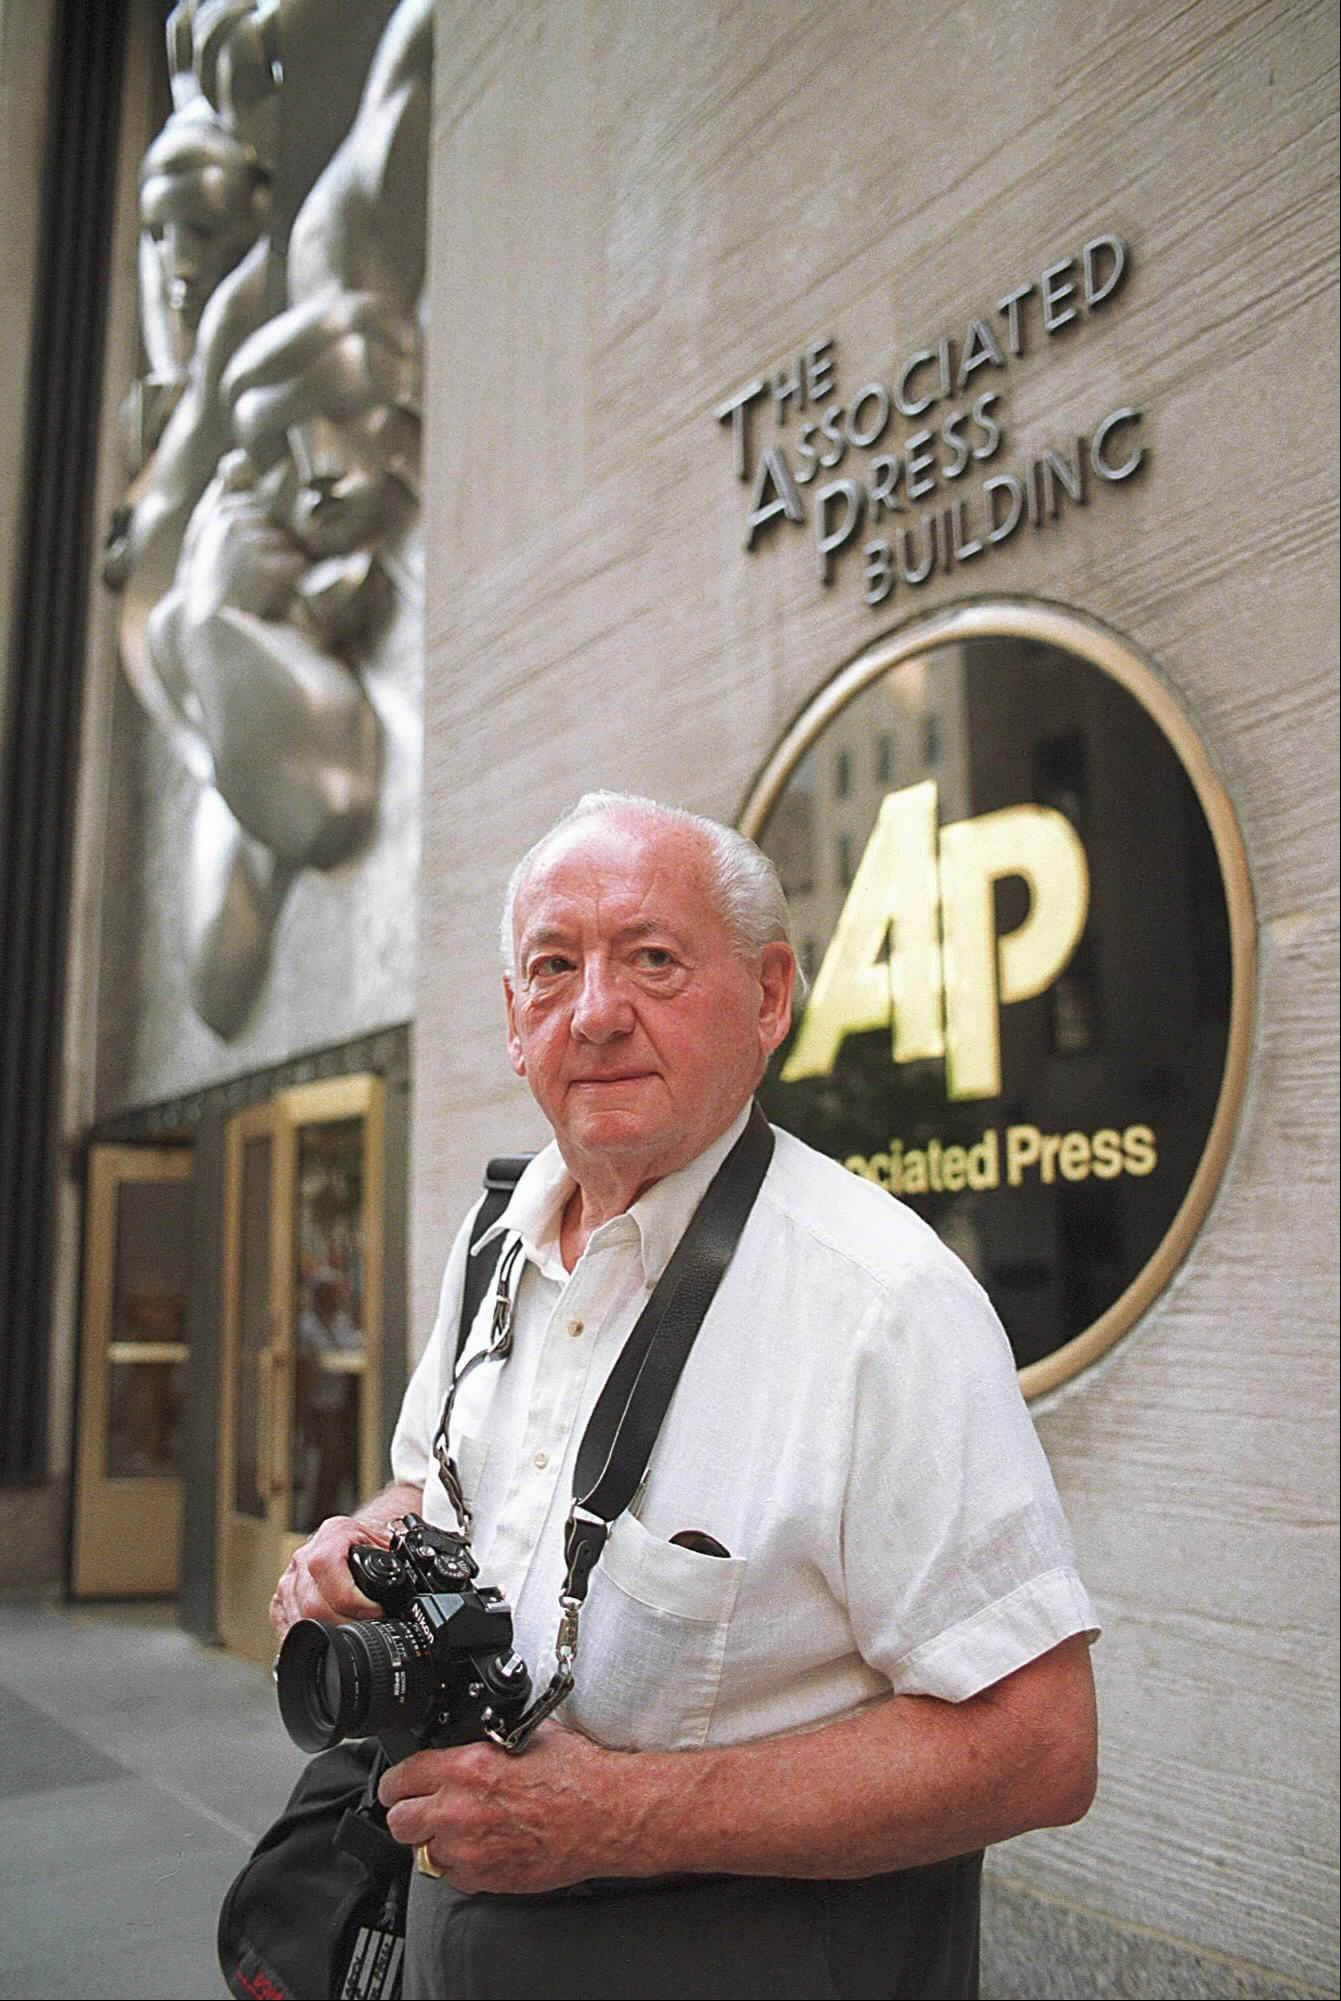 On Sept. 11, 2001, photographer Marty Lederhandler knew the real story was downtown. But he also knew that the trains weren�t going that way, and his 84-year-old legs wouldn�t carry him that far. �If there�s obstacles in your path, you try some other way,� he had said in an interview. �You go behind. You go in back. You go up high.� Lederhandler took the elevator to the 65th floor and the famed Rainbow Room at 30 Rockefeller Plaza, which he knew would offer a stunning view of the Empire State Building and the Twin Towers beyond, and began shooting. �The only other story that compares to this is D-Day,� said Lederhandler, who died in March 2010 at the age of 92.